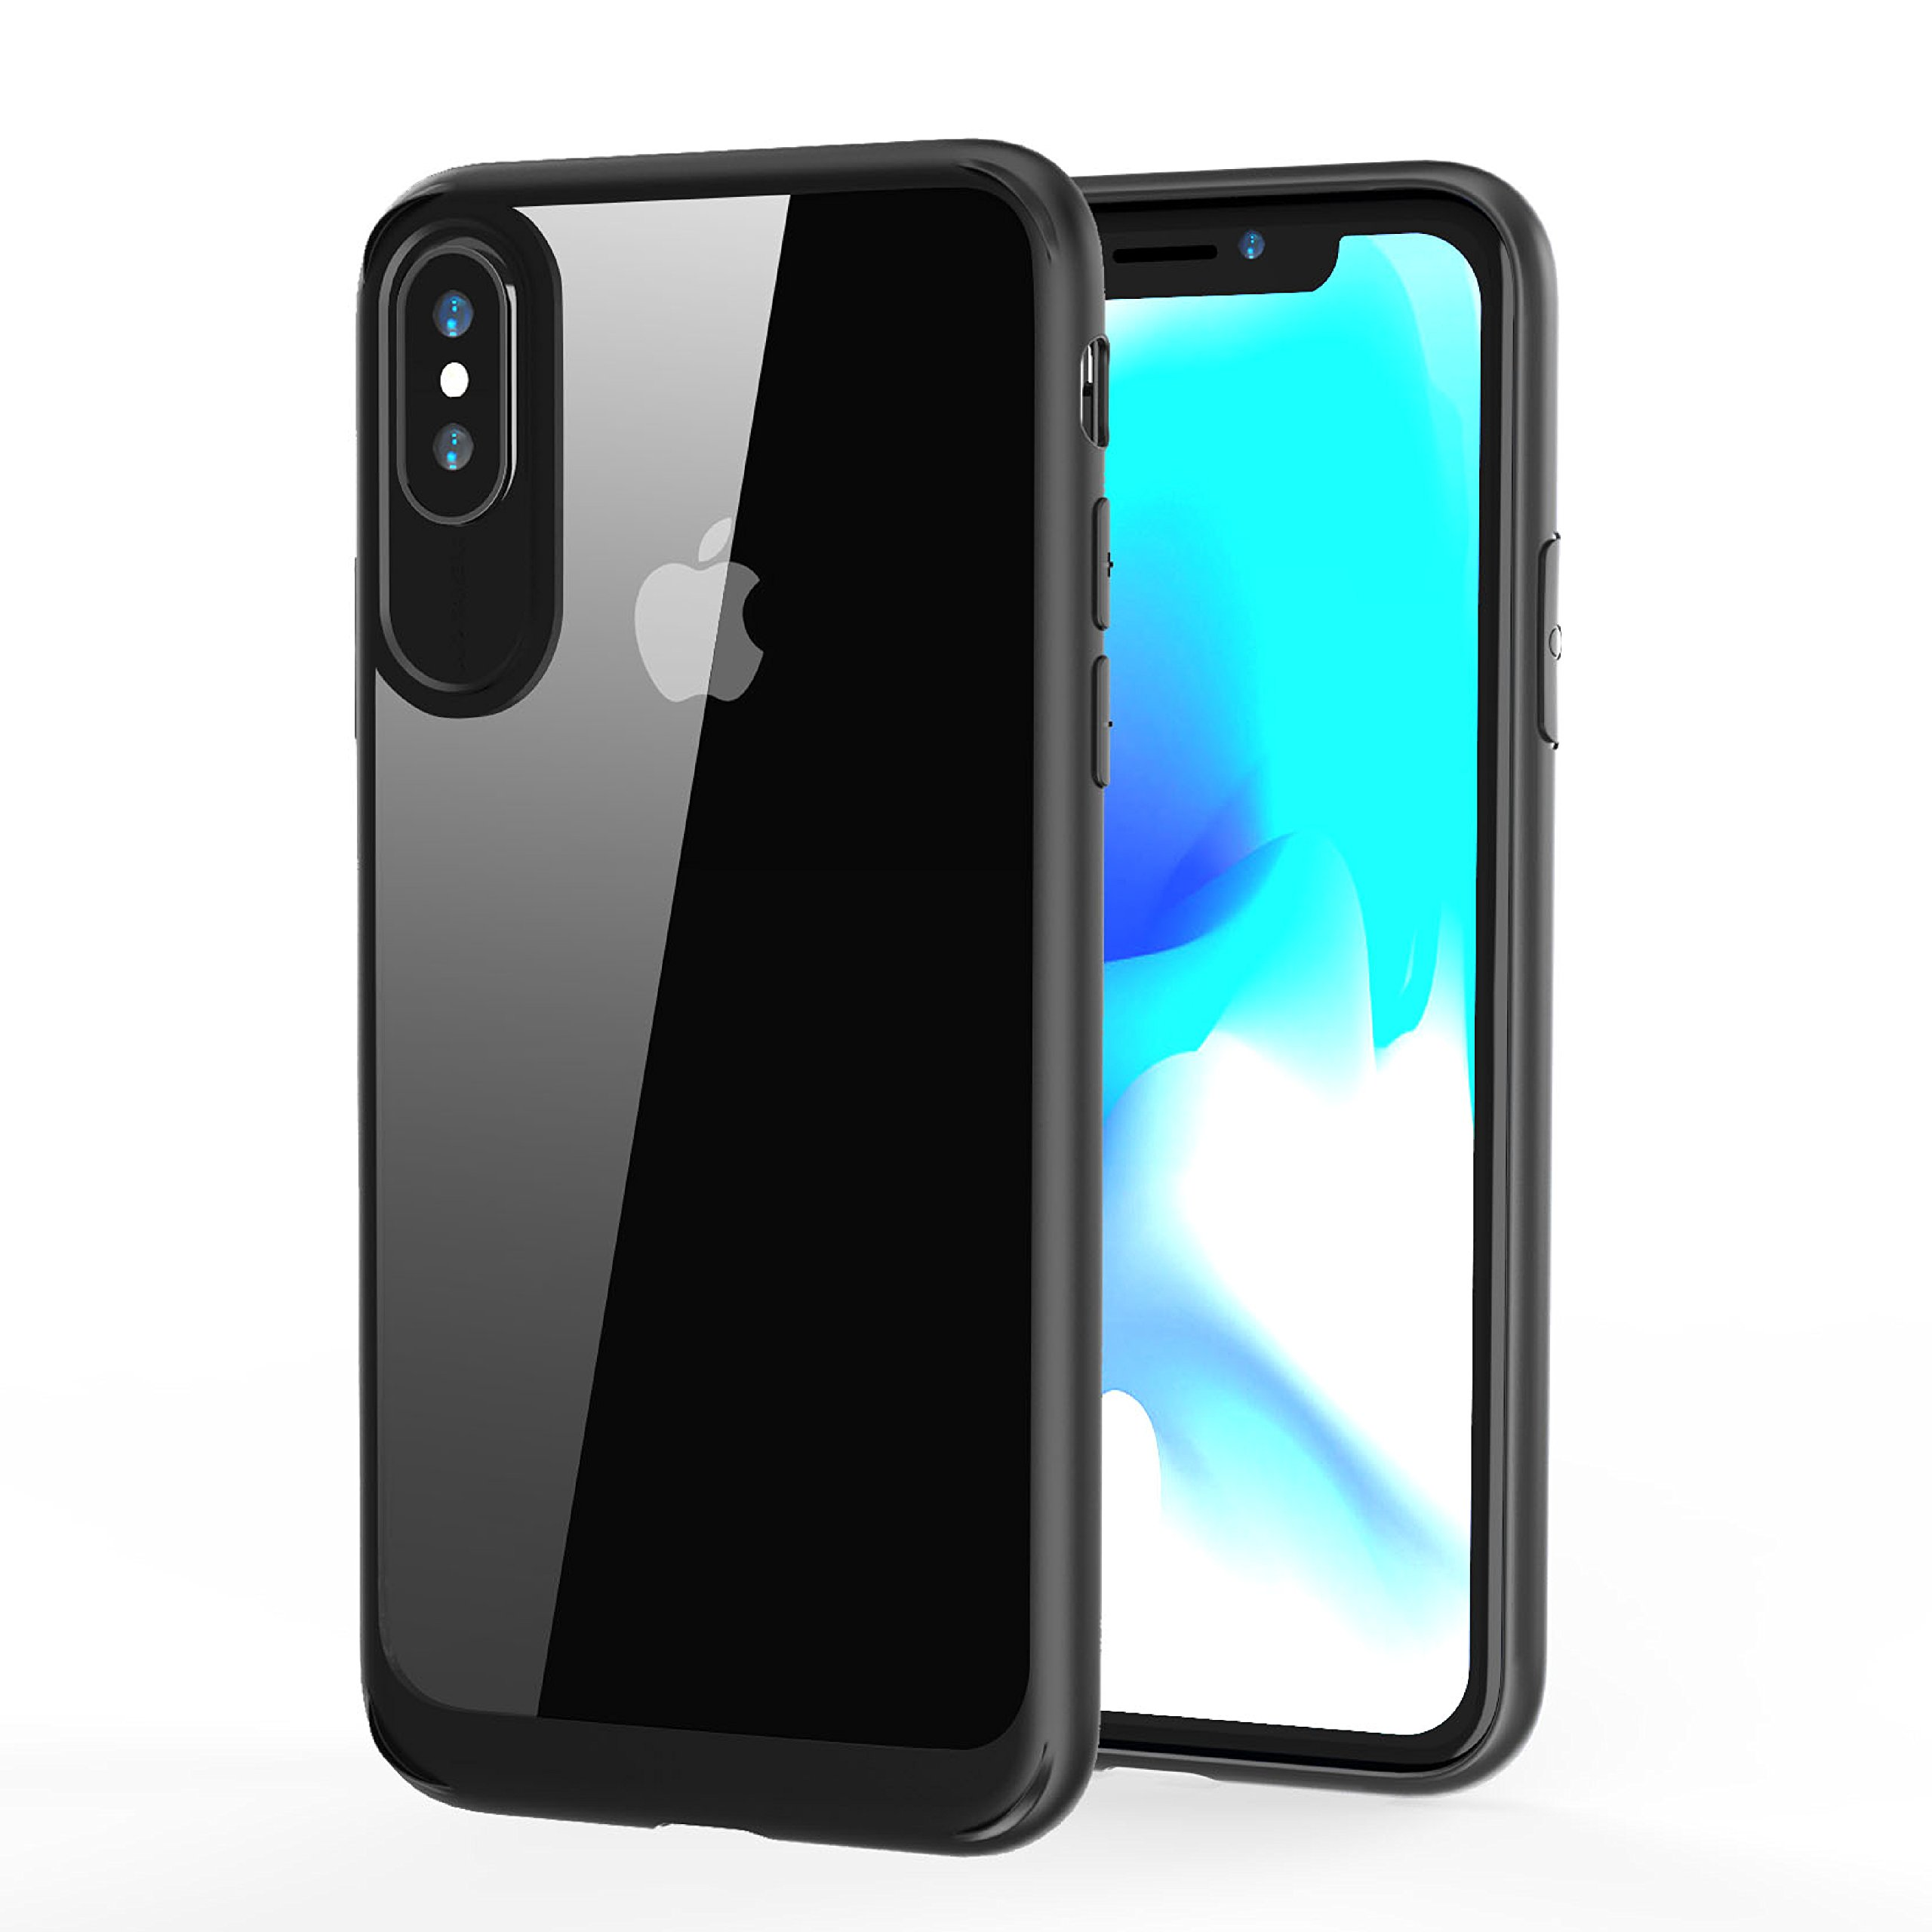 for iphone x case auckly hybrid cover reinforced camera protection clear black ebay. Black Bedroom Furniture Sets. Home Design Ideas